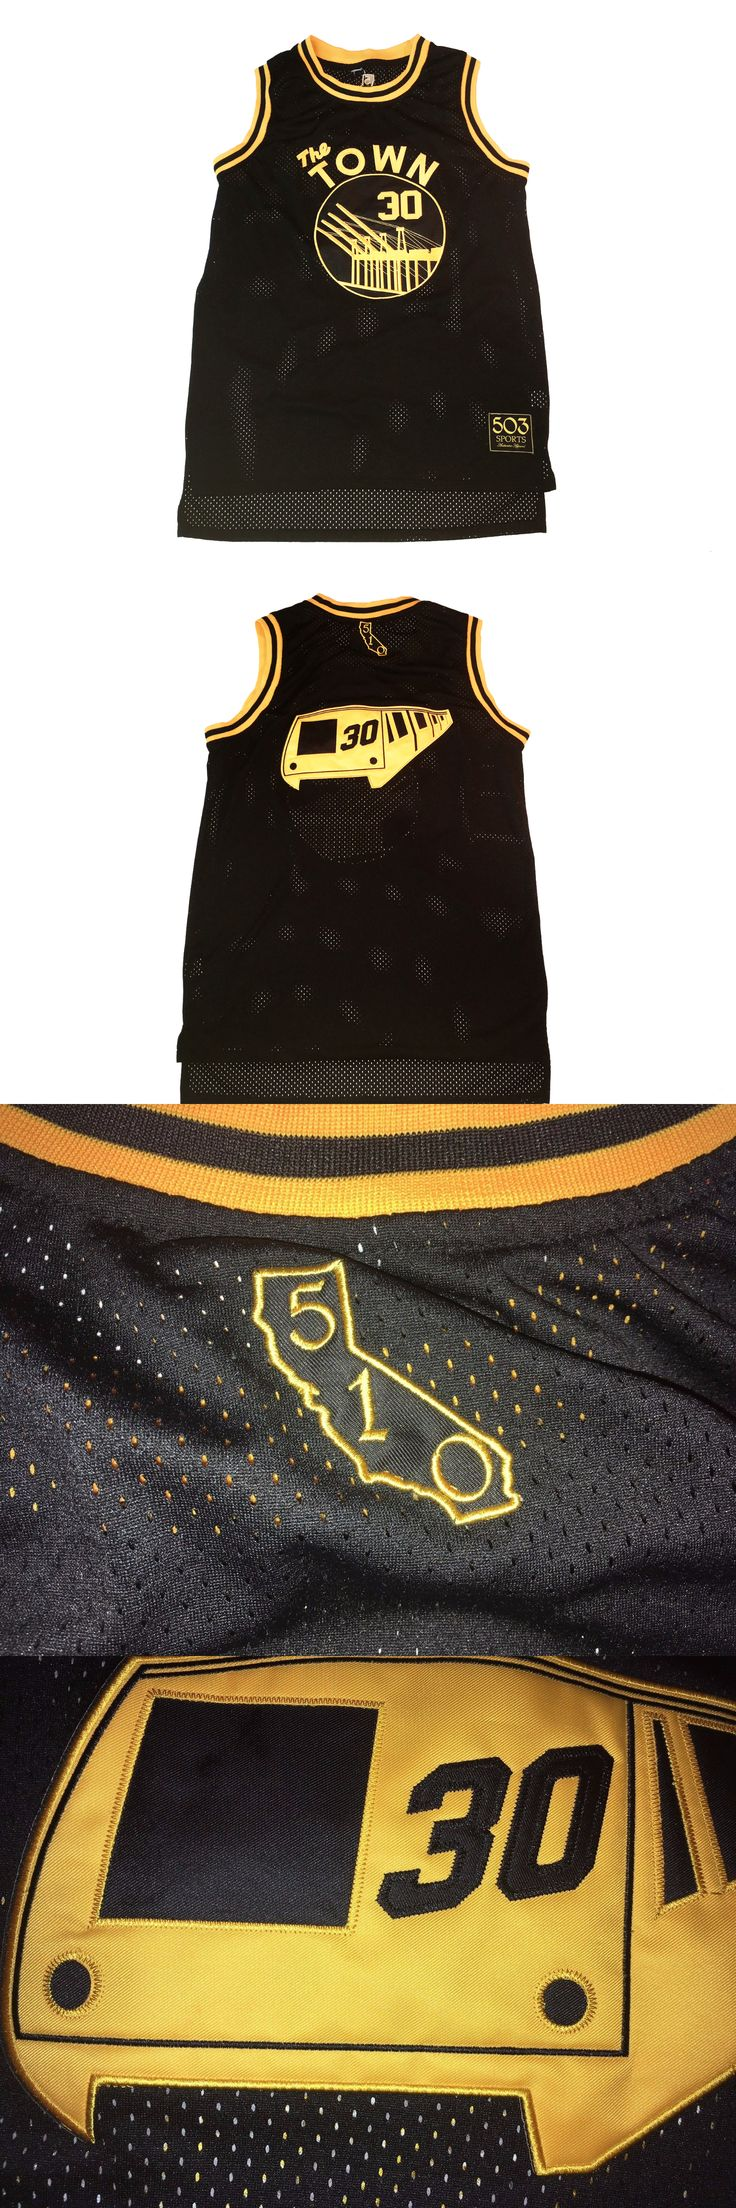 Basketball-NBA 24442: The Town Basketball Jersey Oakland The City Black Warriors Stephen Curry -> BUY IT NOW ONLY: $59.99 on eBay!